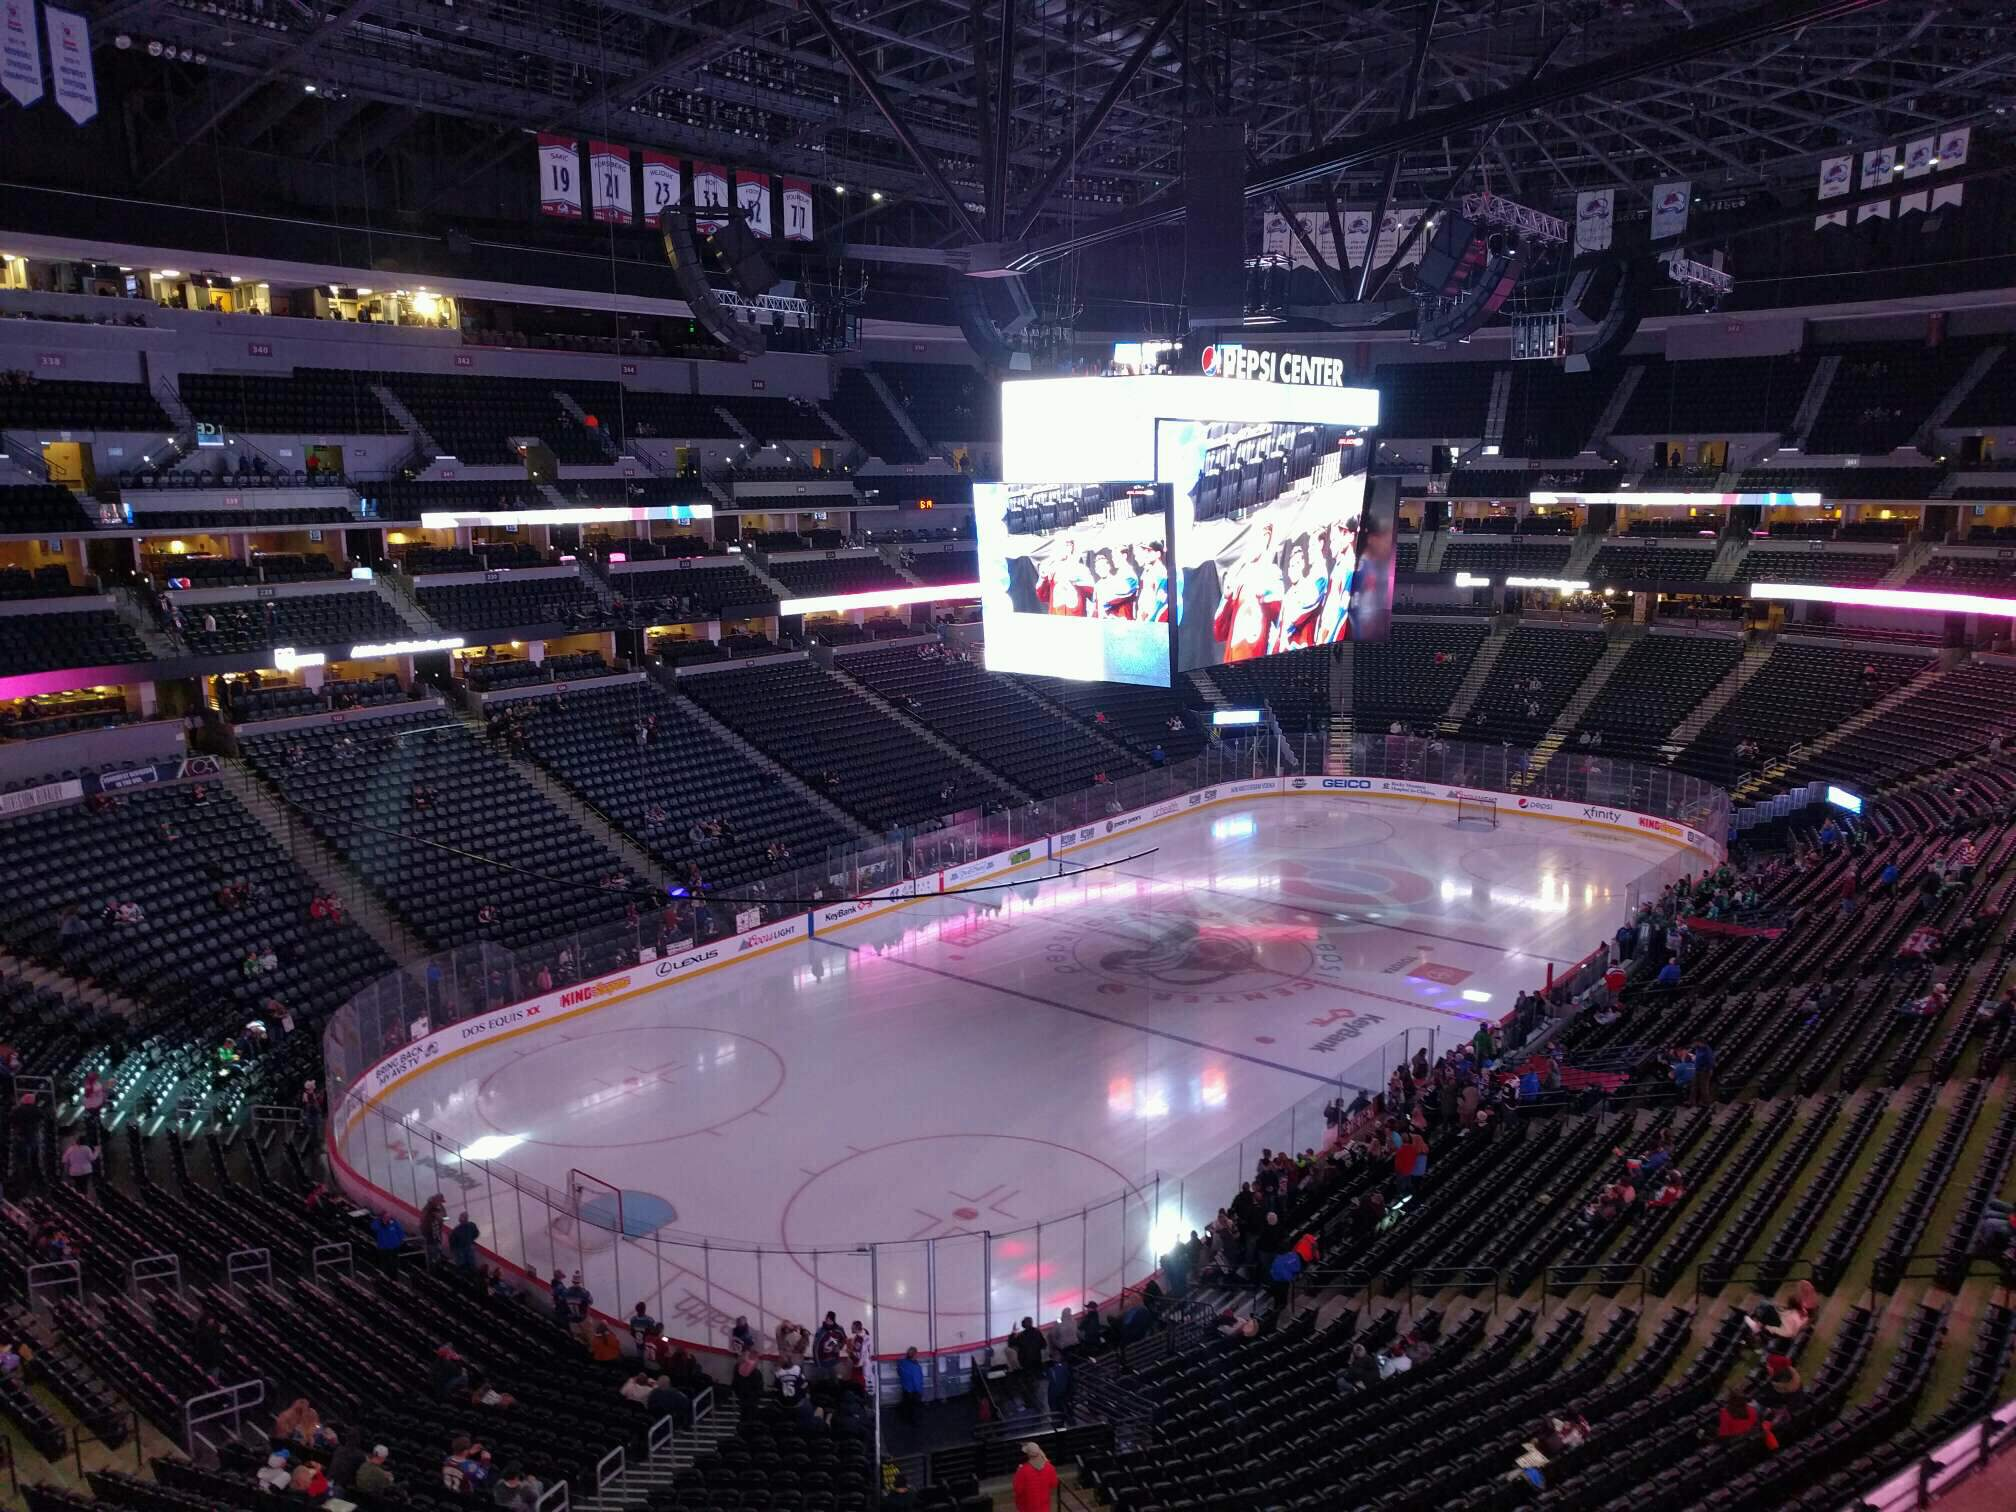 Ball Arena Section 313 Row 3 Seat 11